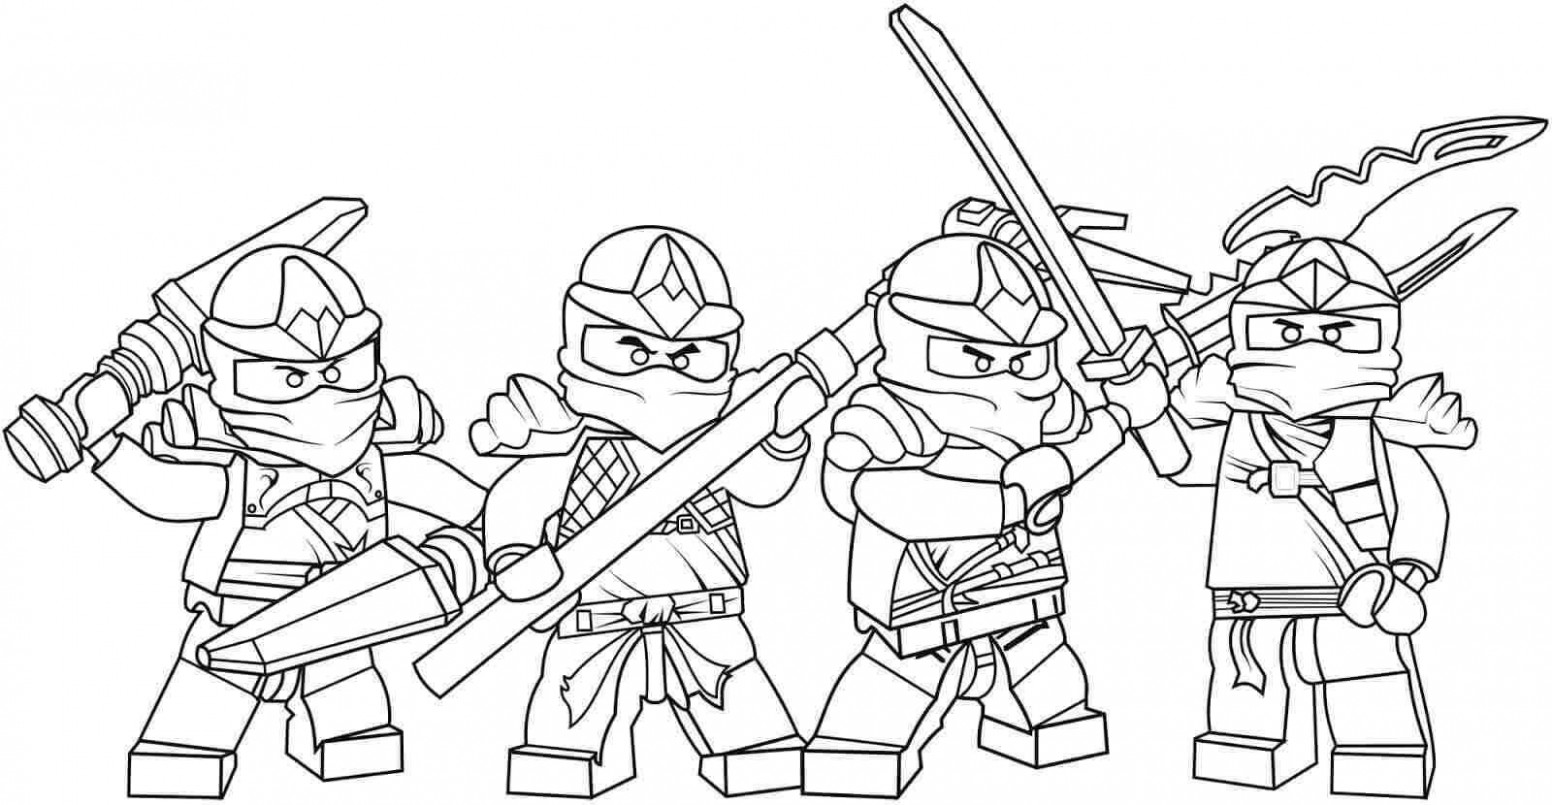 Ninjago Coloring Pages Free 17 With Ninjago Coloring Pages Free ..